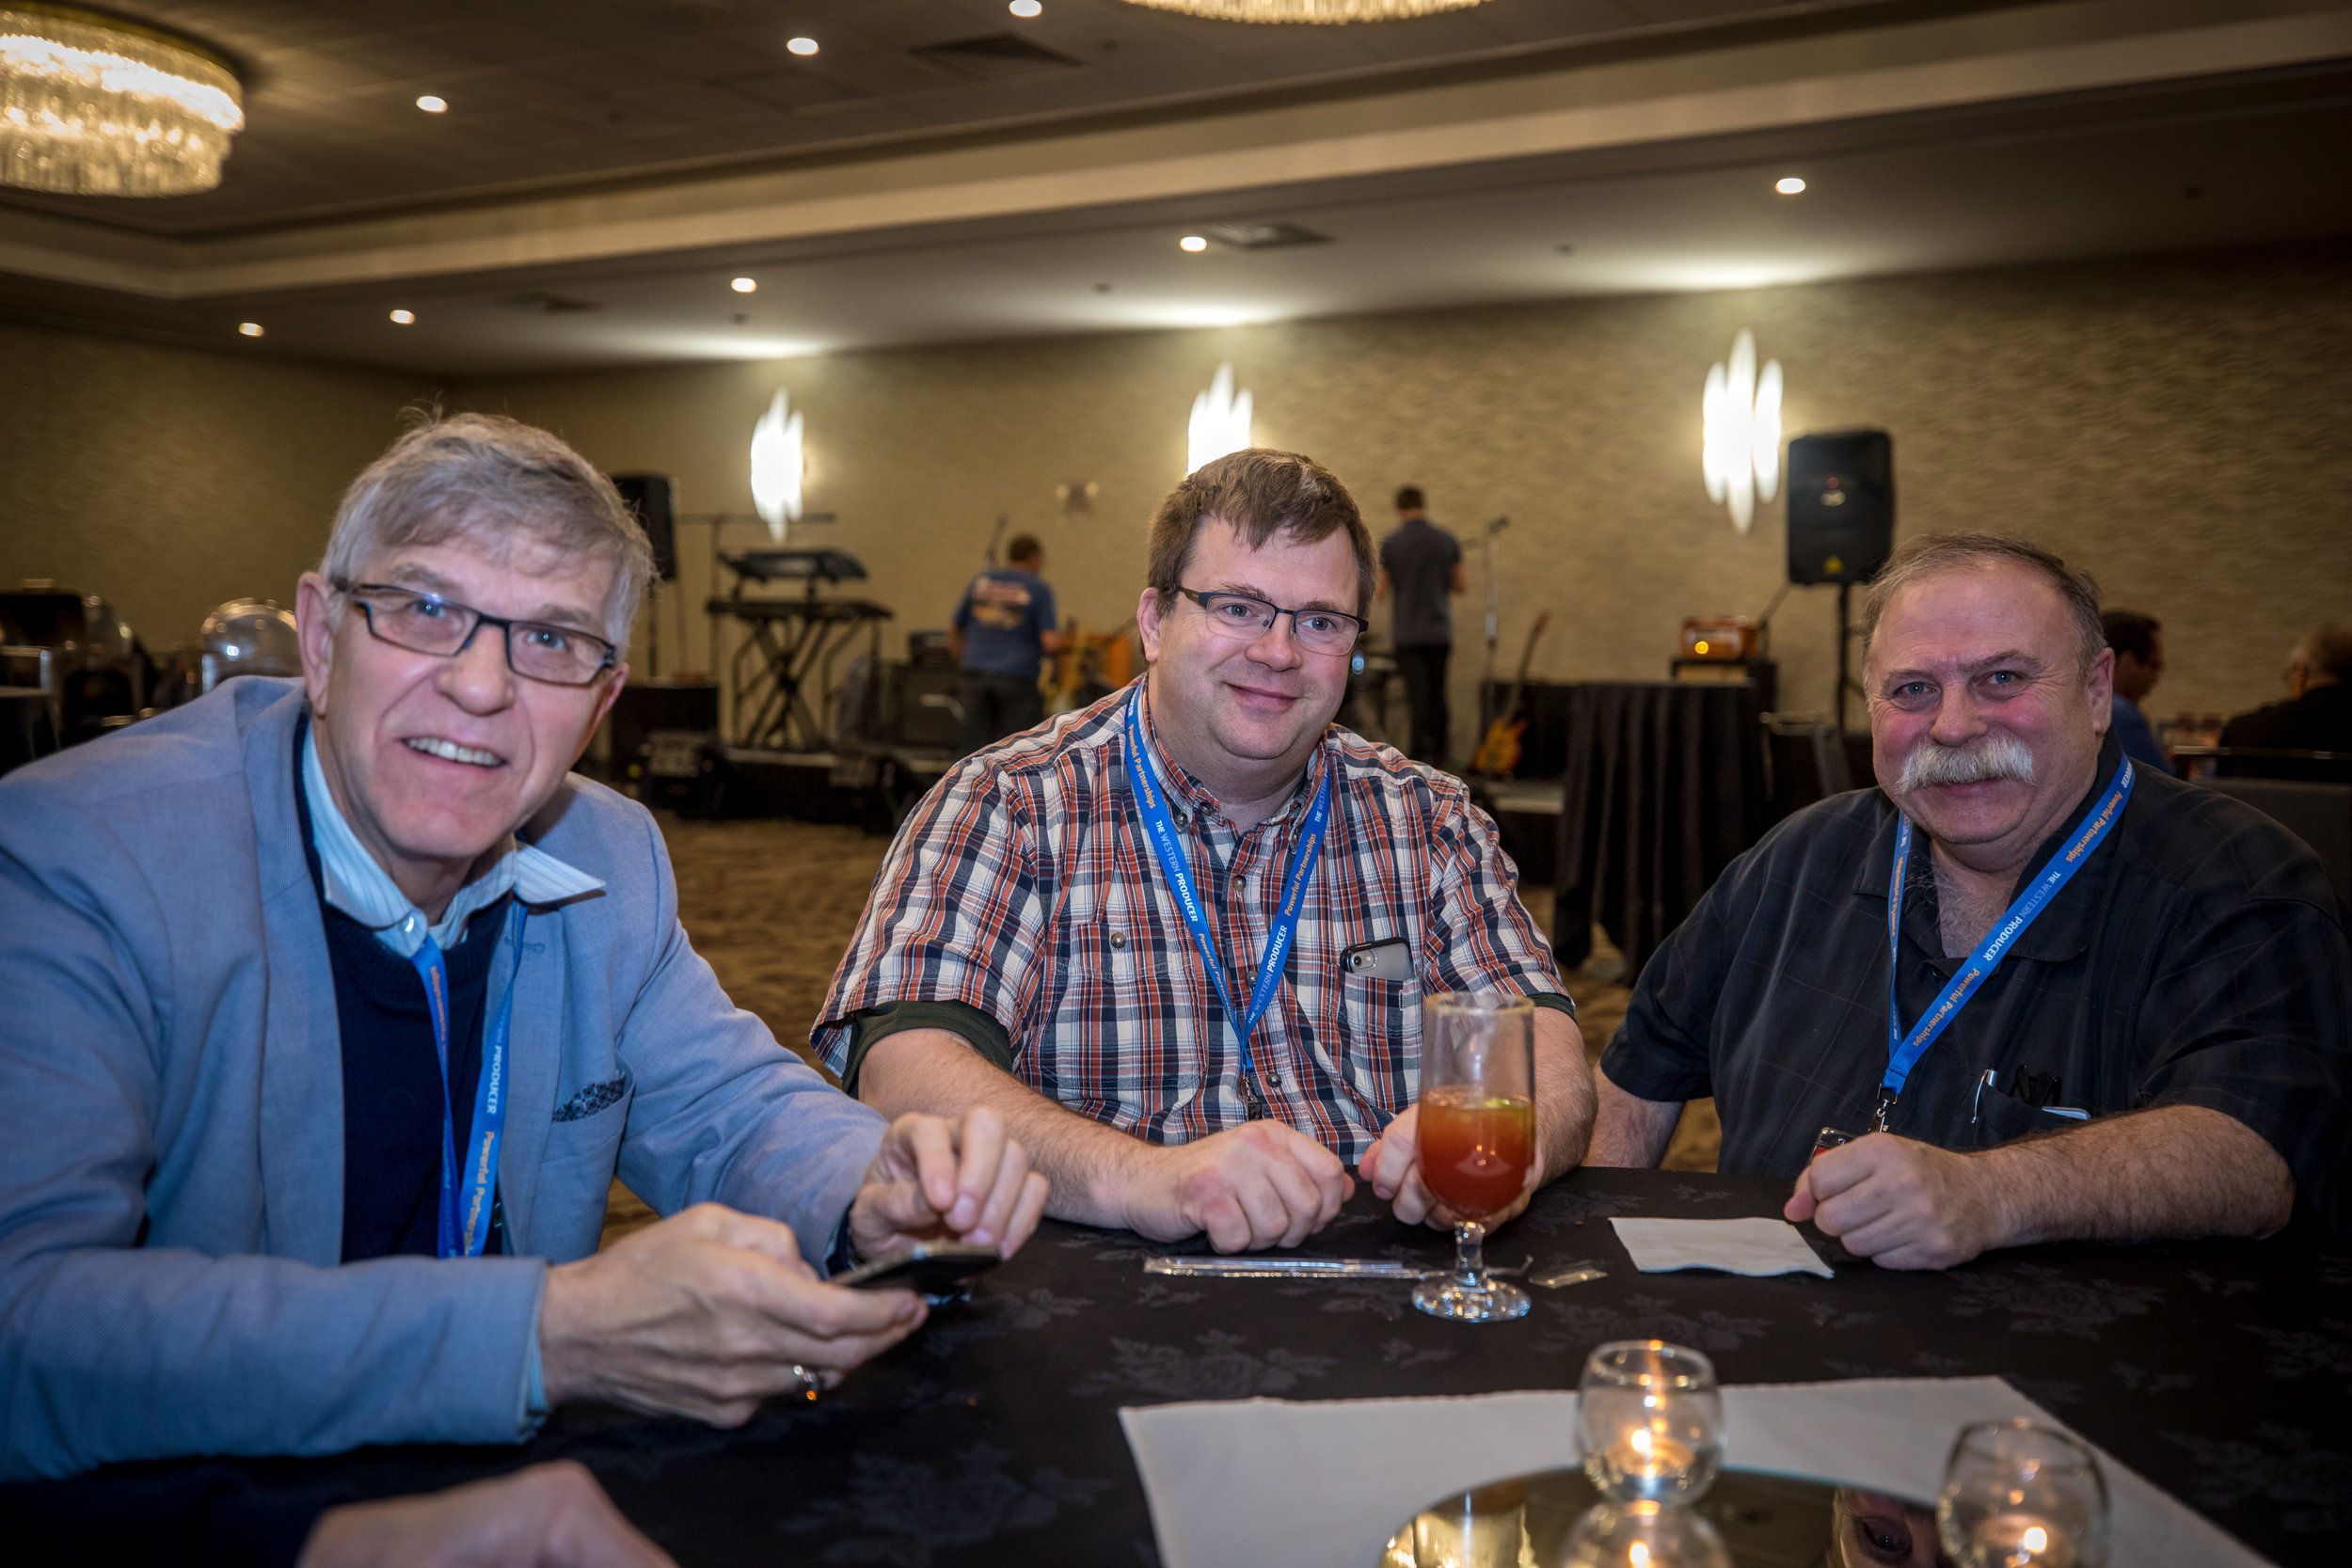 2019 01-31 Alberta Auctioneer Convention Day 01 - Calgary 06.jpg